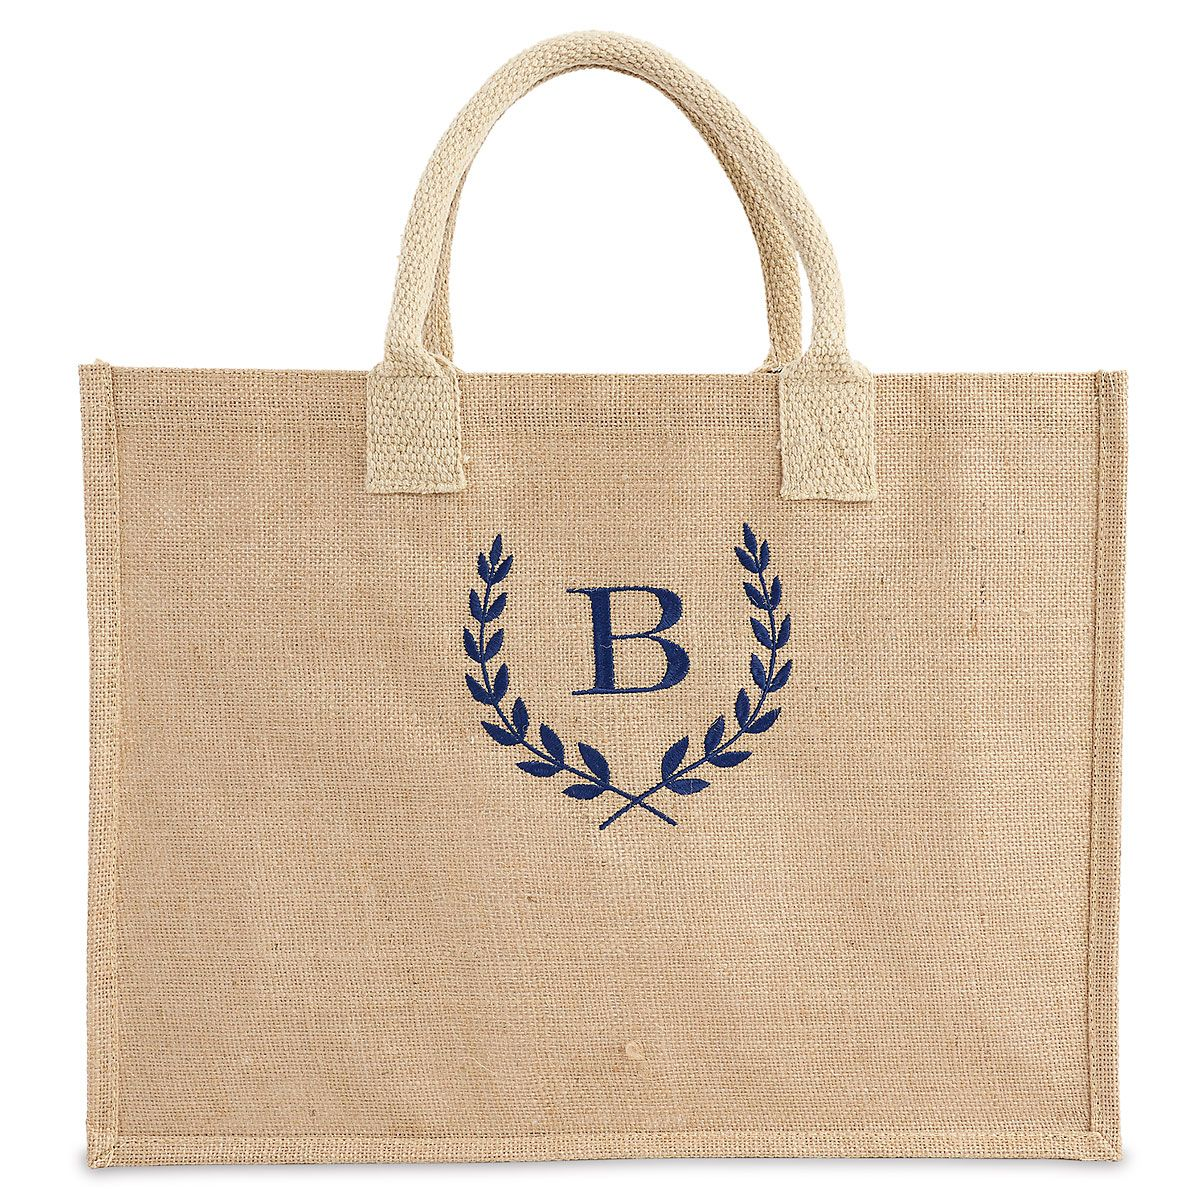 Personalized Large Jute Tote - Blue Thread